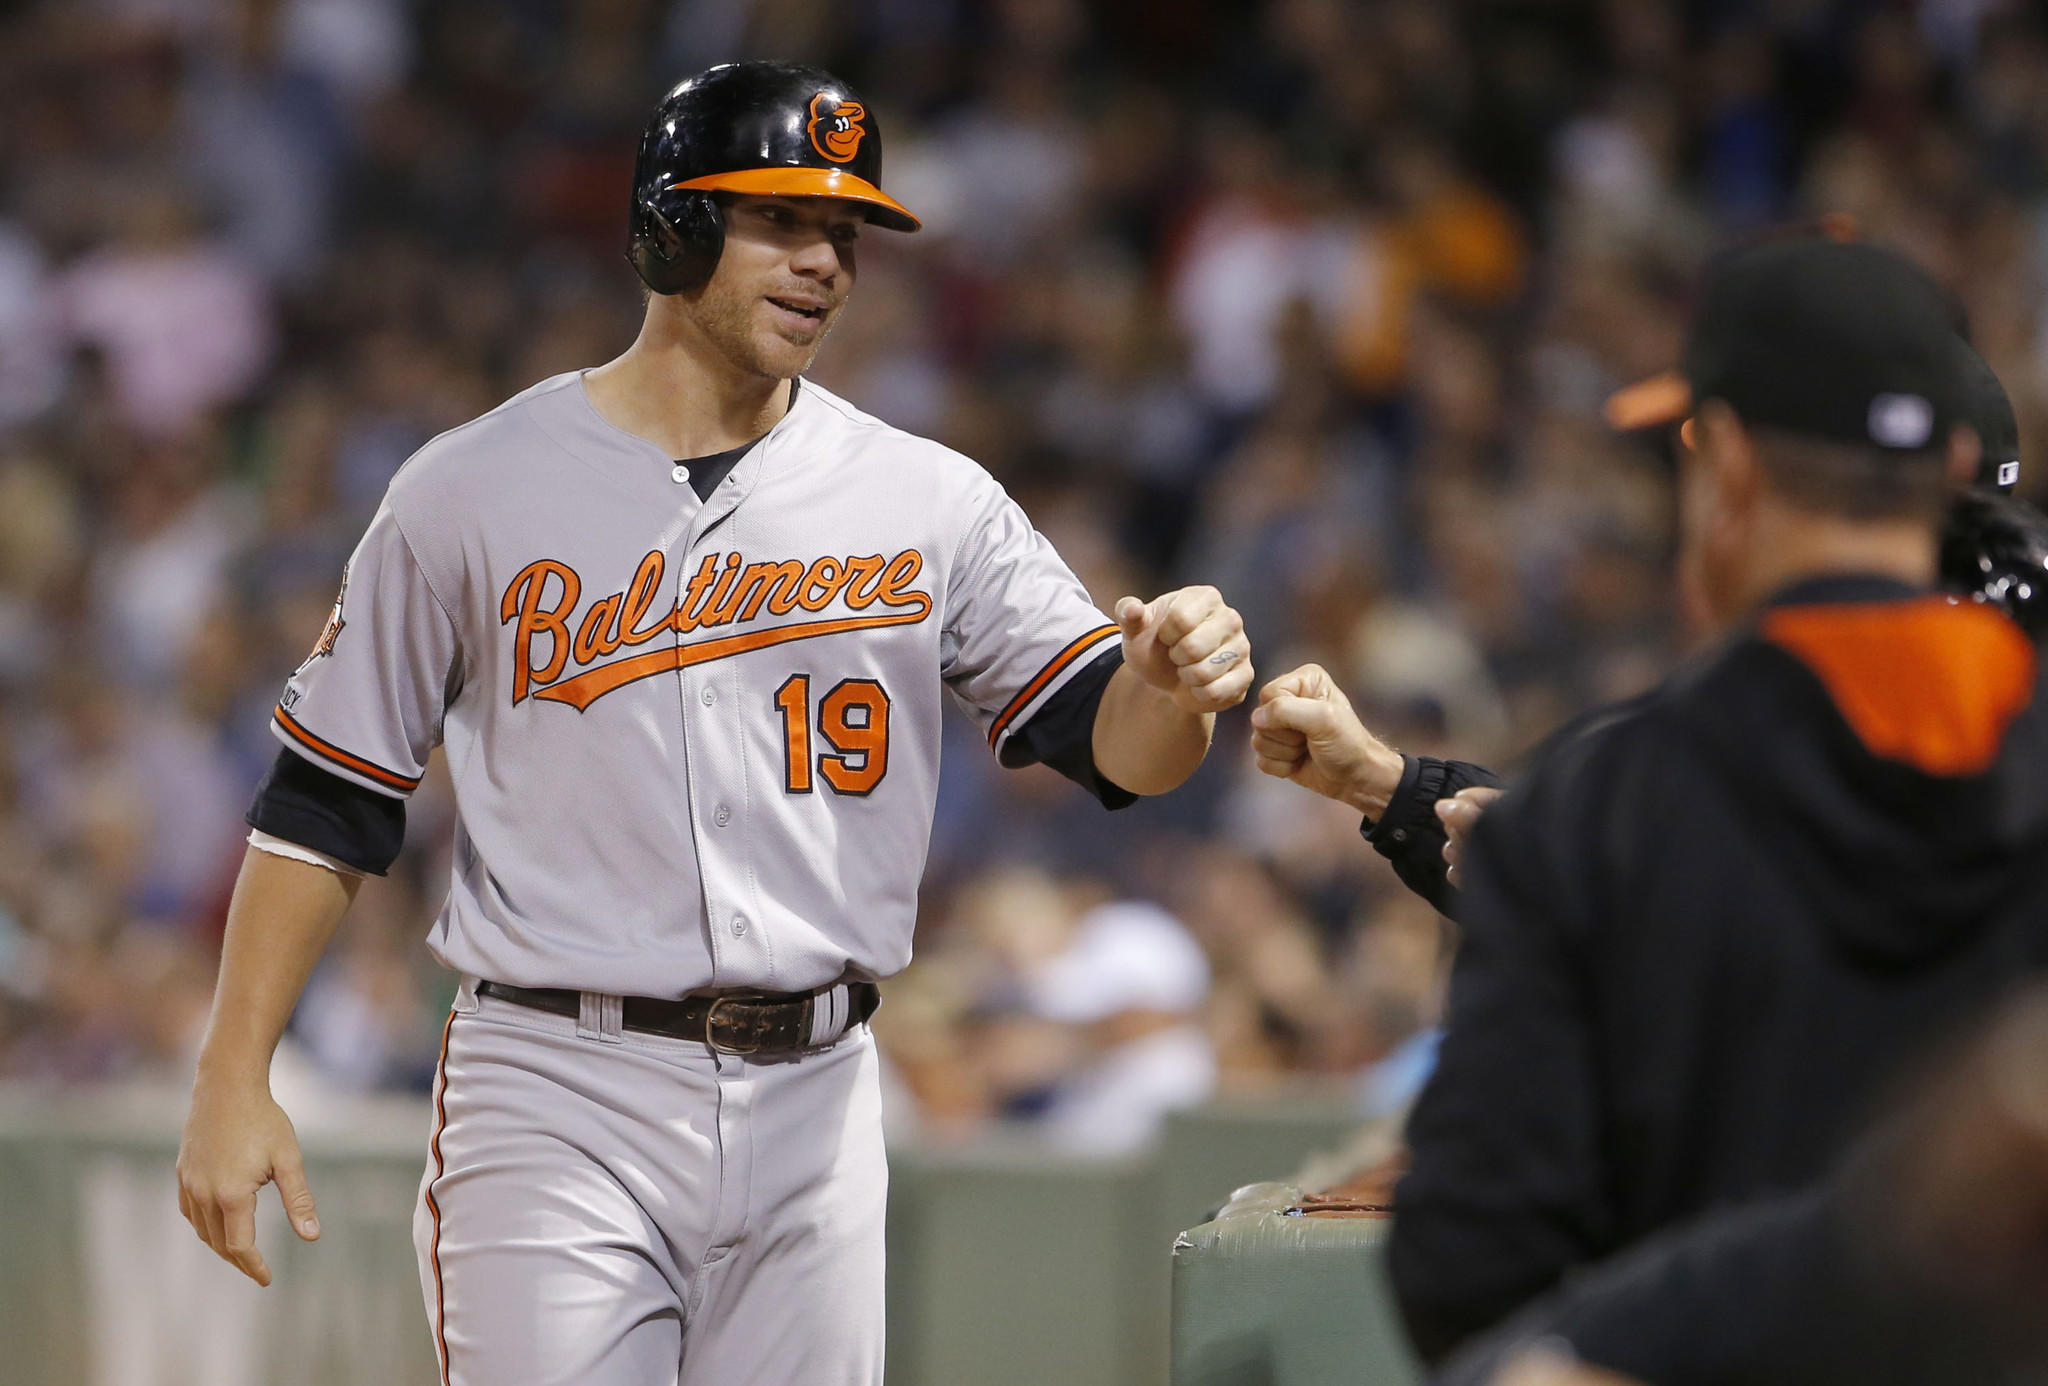 Baltimore Orioles' Chris Davis is congratulated after scoring against the Boston Red Sox.